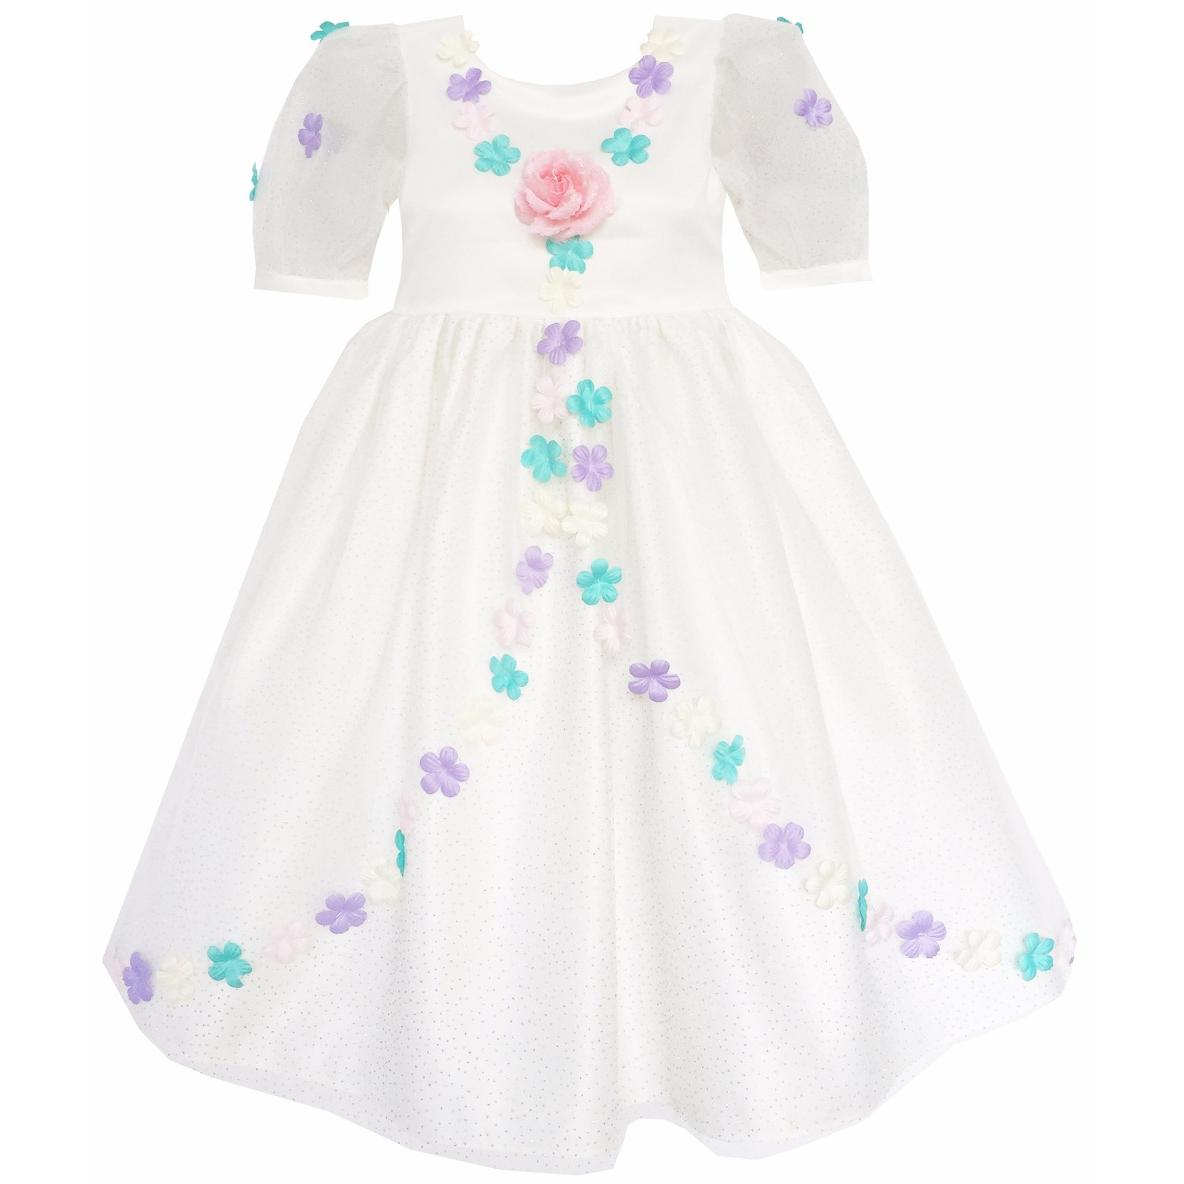 Sunny Fashion Flower Girl Dress Sequin Rose Flower Petal Wedding Princess 2018 Summer Party Dresses Kids Clothes Size 4-14 sunny fashion flower girls dress peach ruffle butterfly wedding bridesmaid 2018 summer princess party dresses clothes size 6 14